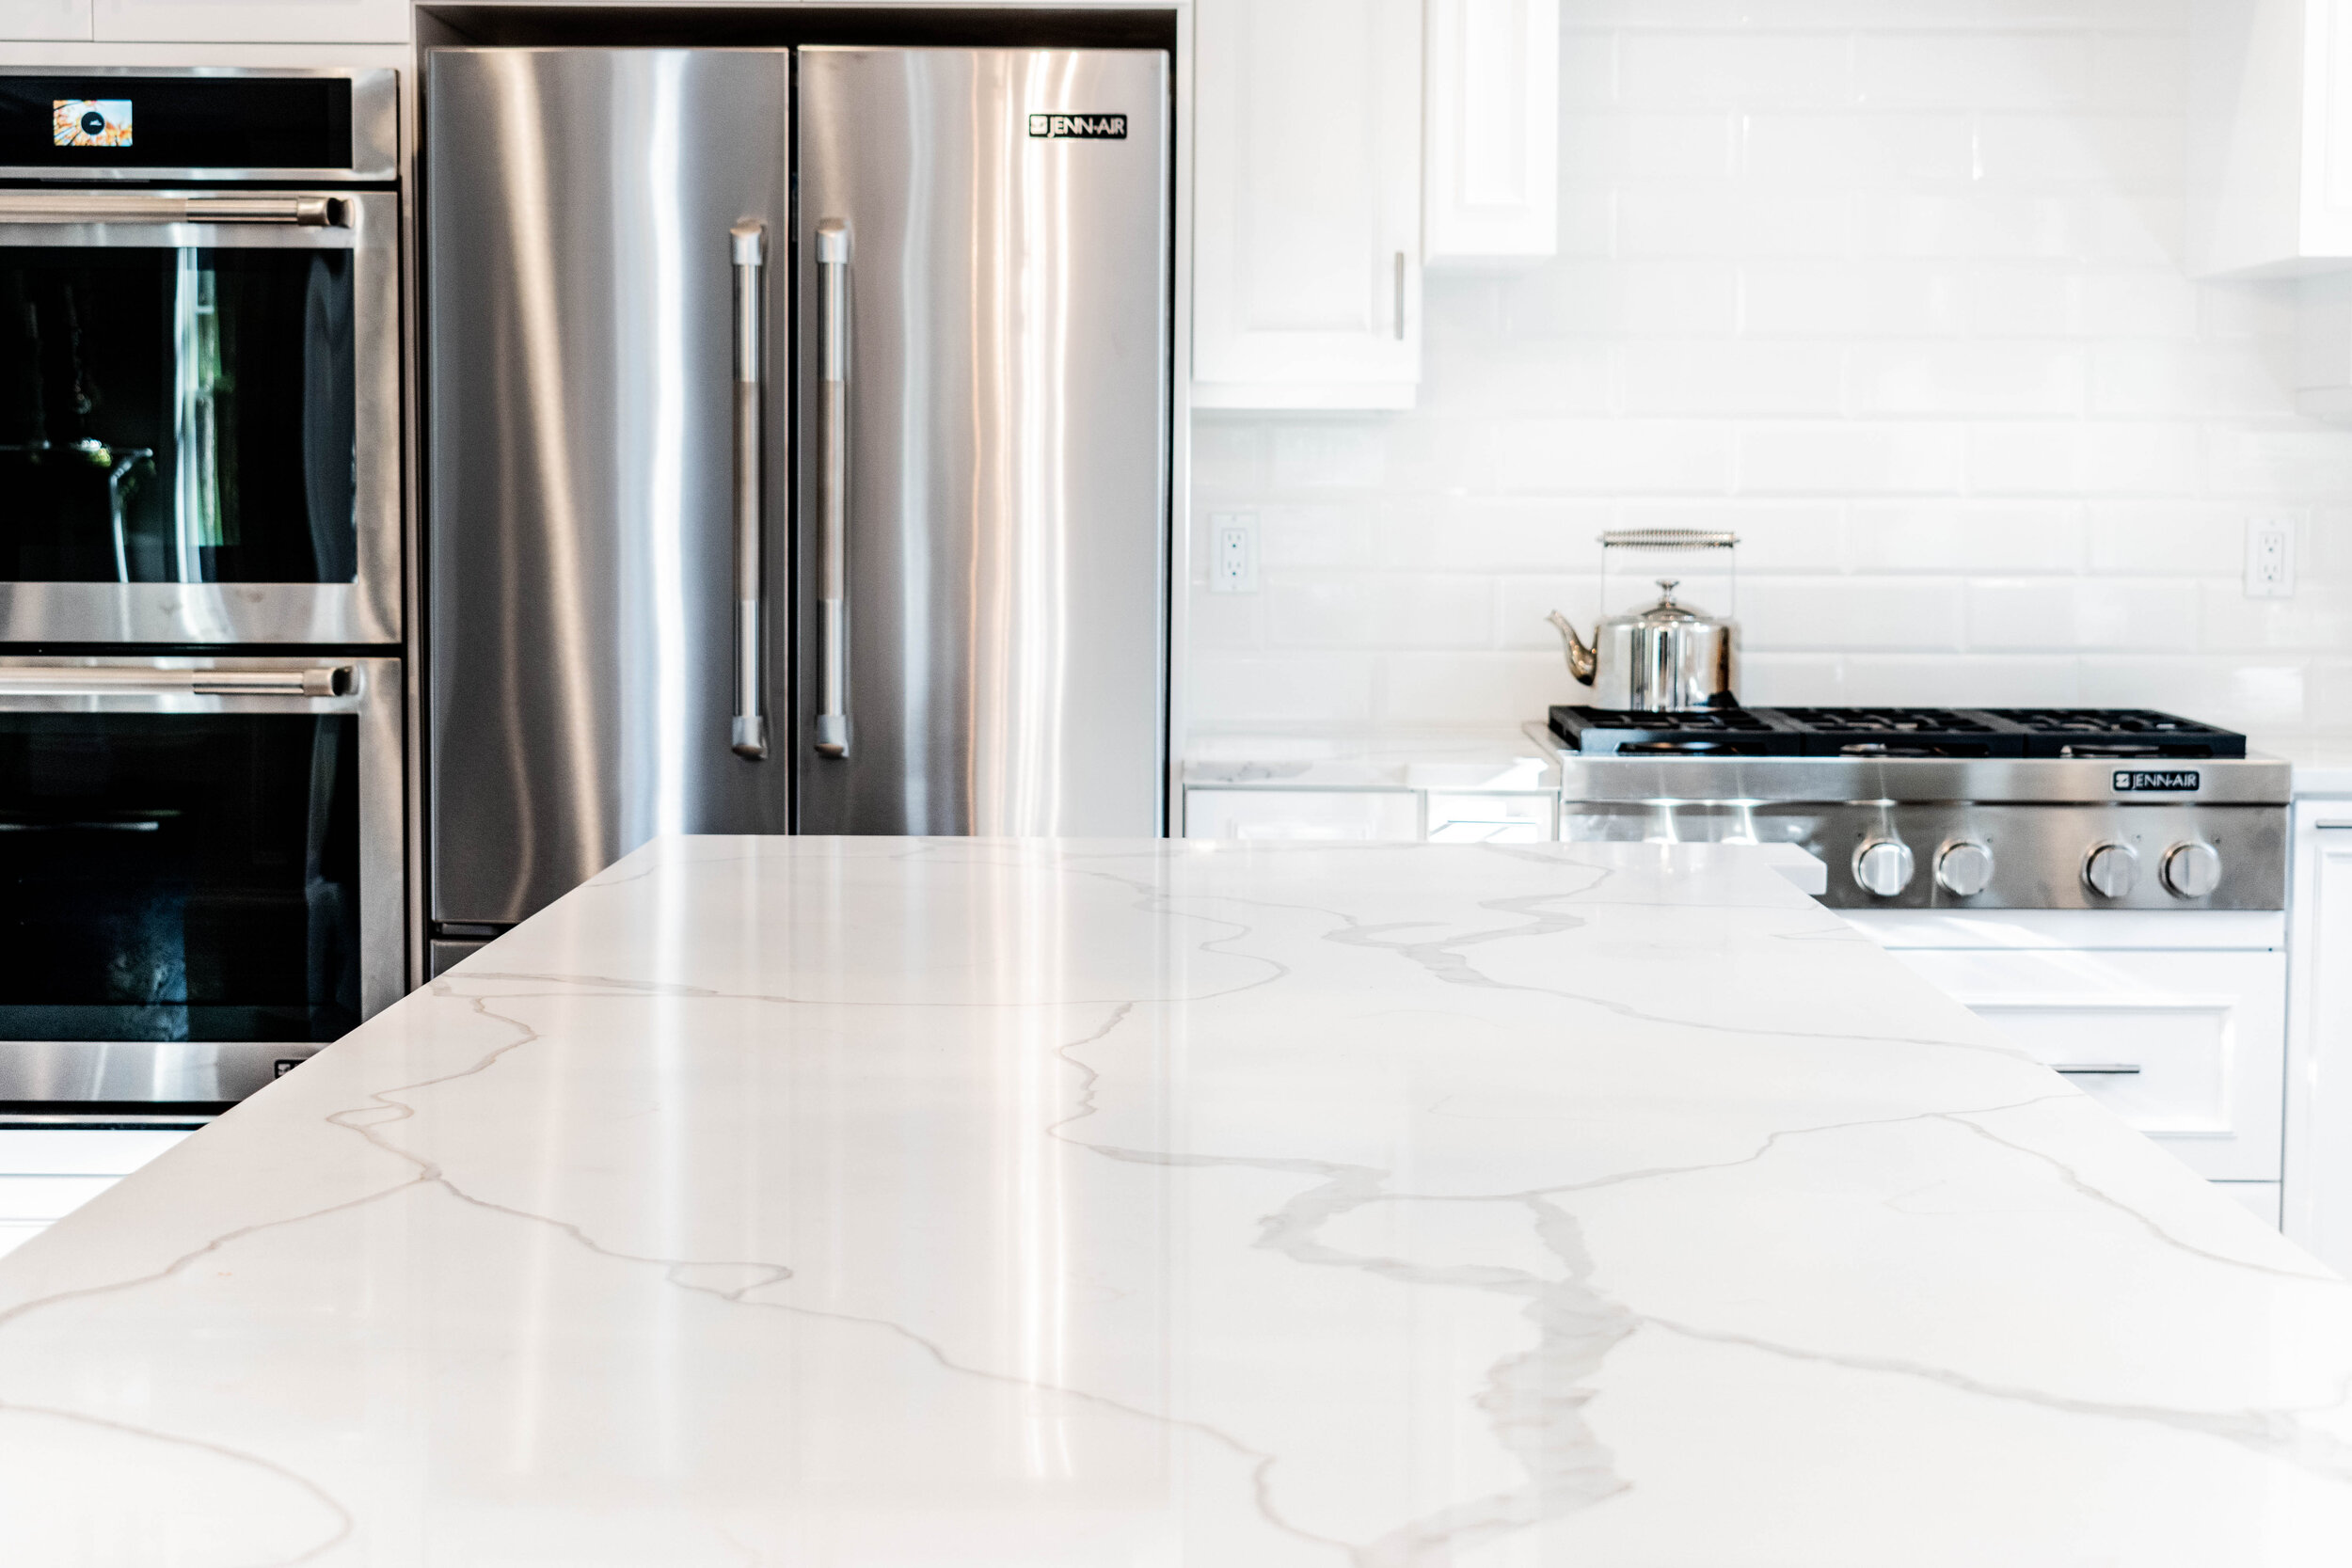 Material: Q-MSI Calacatta Classique (Bookmatched)  Thickness, Finish & Stone Type: 3CM Polished Quartz  Edge: Eased  Sink: ZAP ZP3417 HMZ